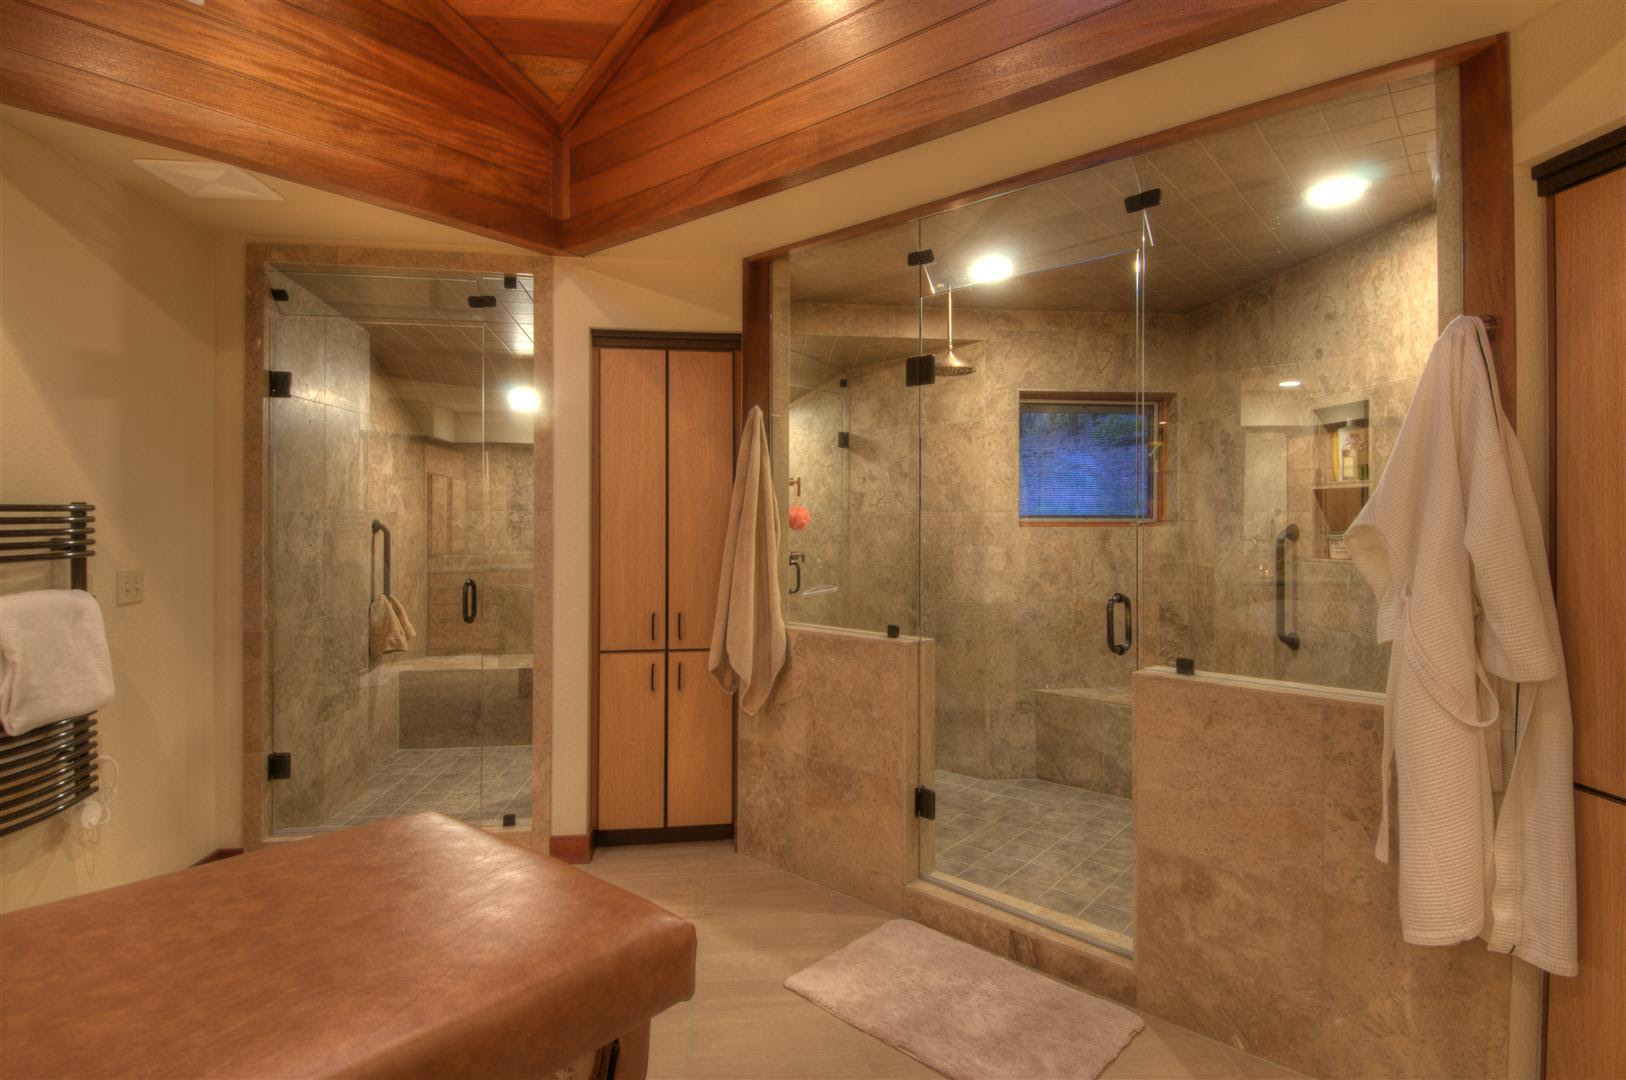 Elegant Shower Ideas for Master Bathroom - HomesFeed